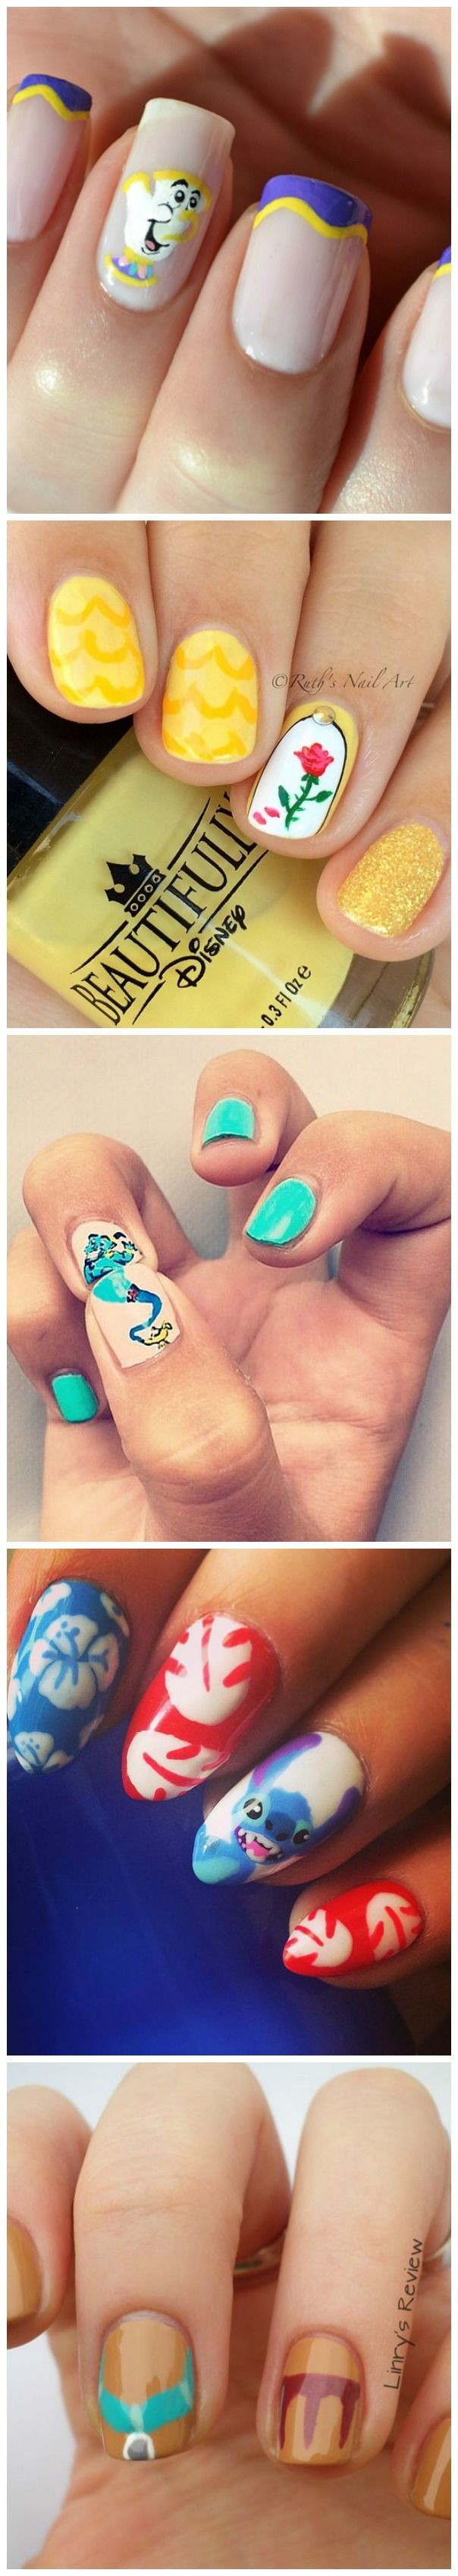 These disney nail art ideas will make you want to get a magical